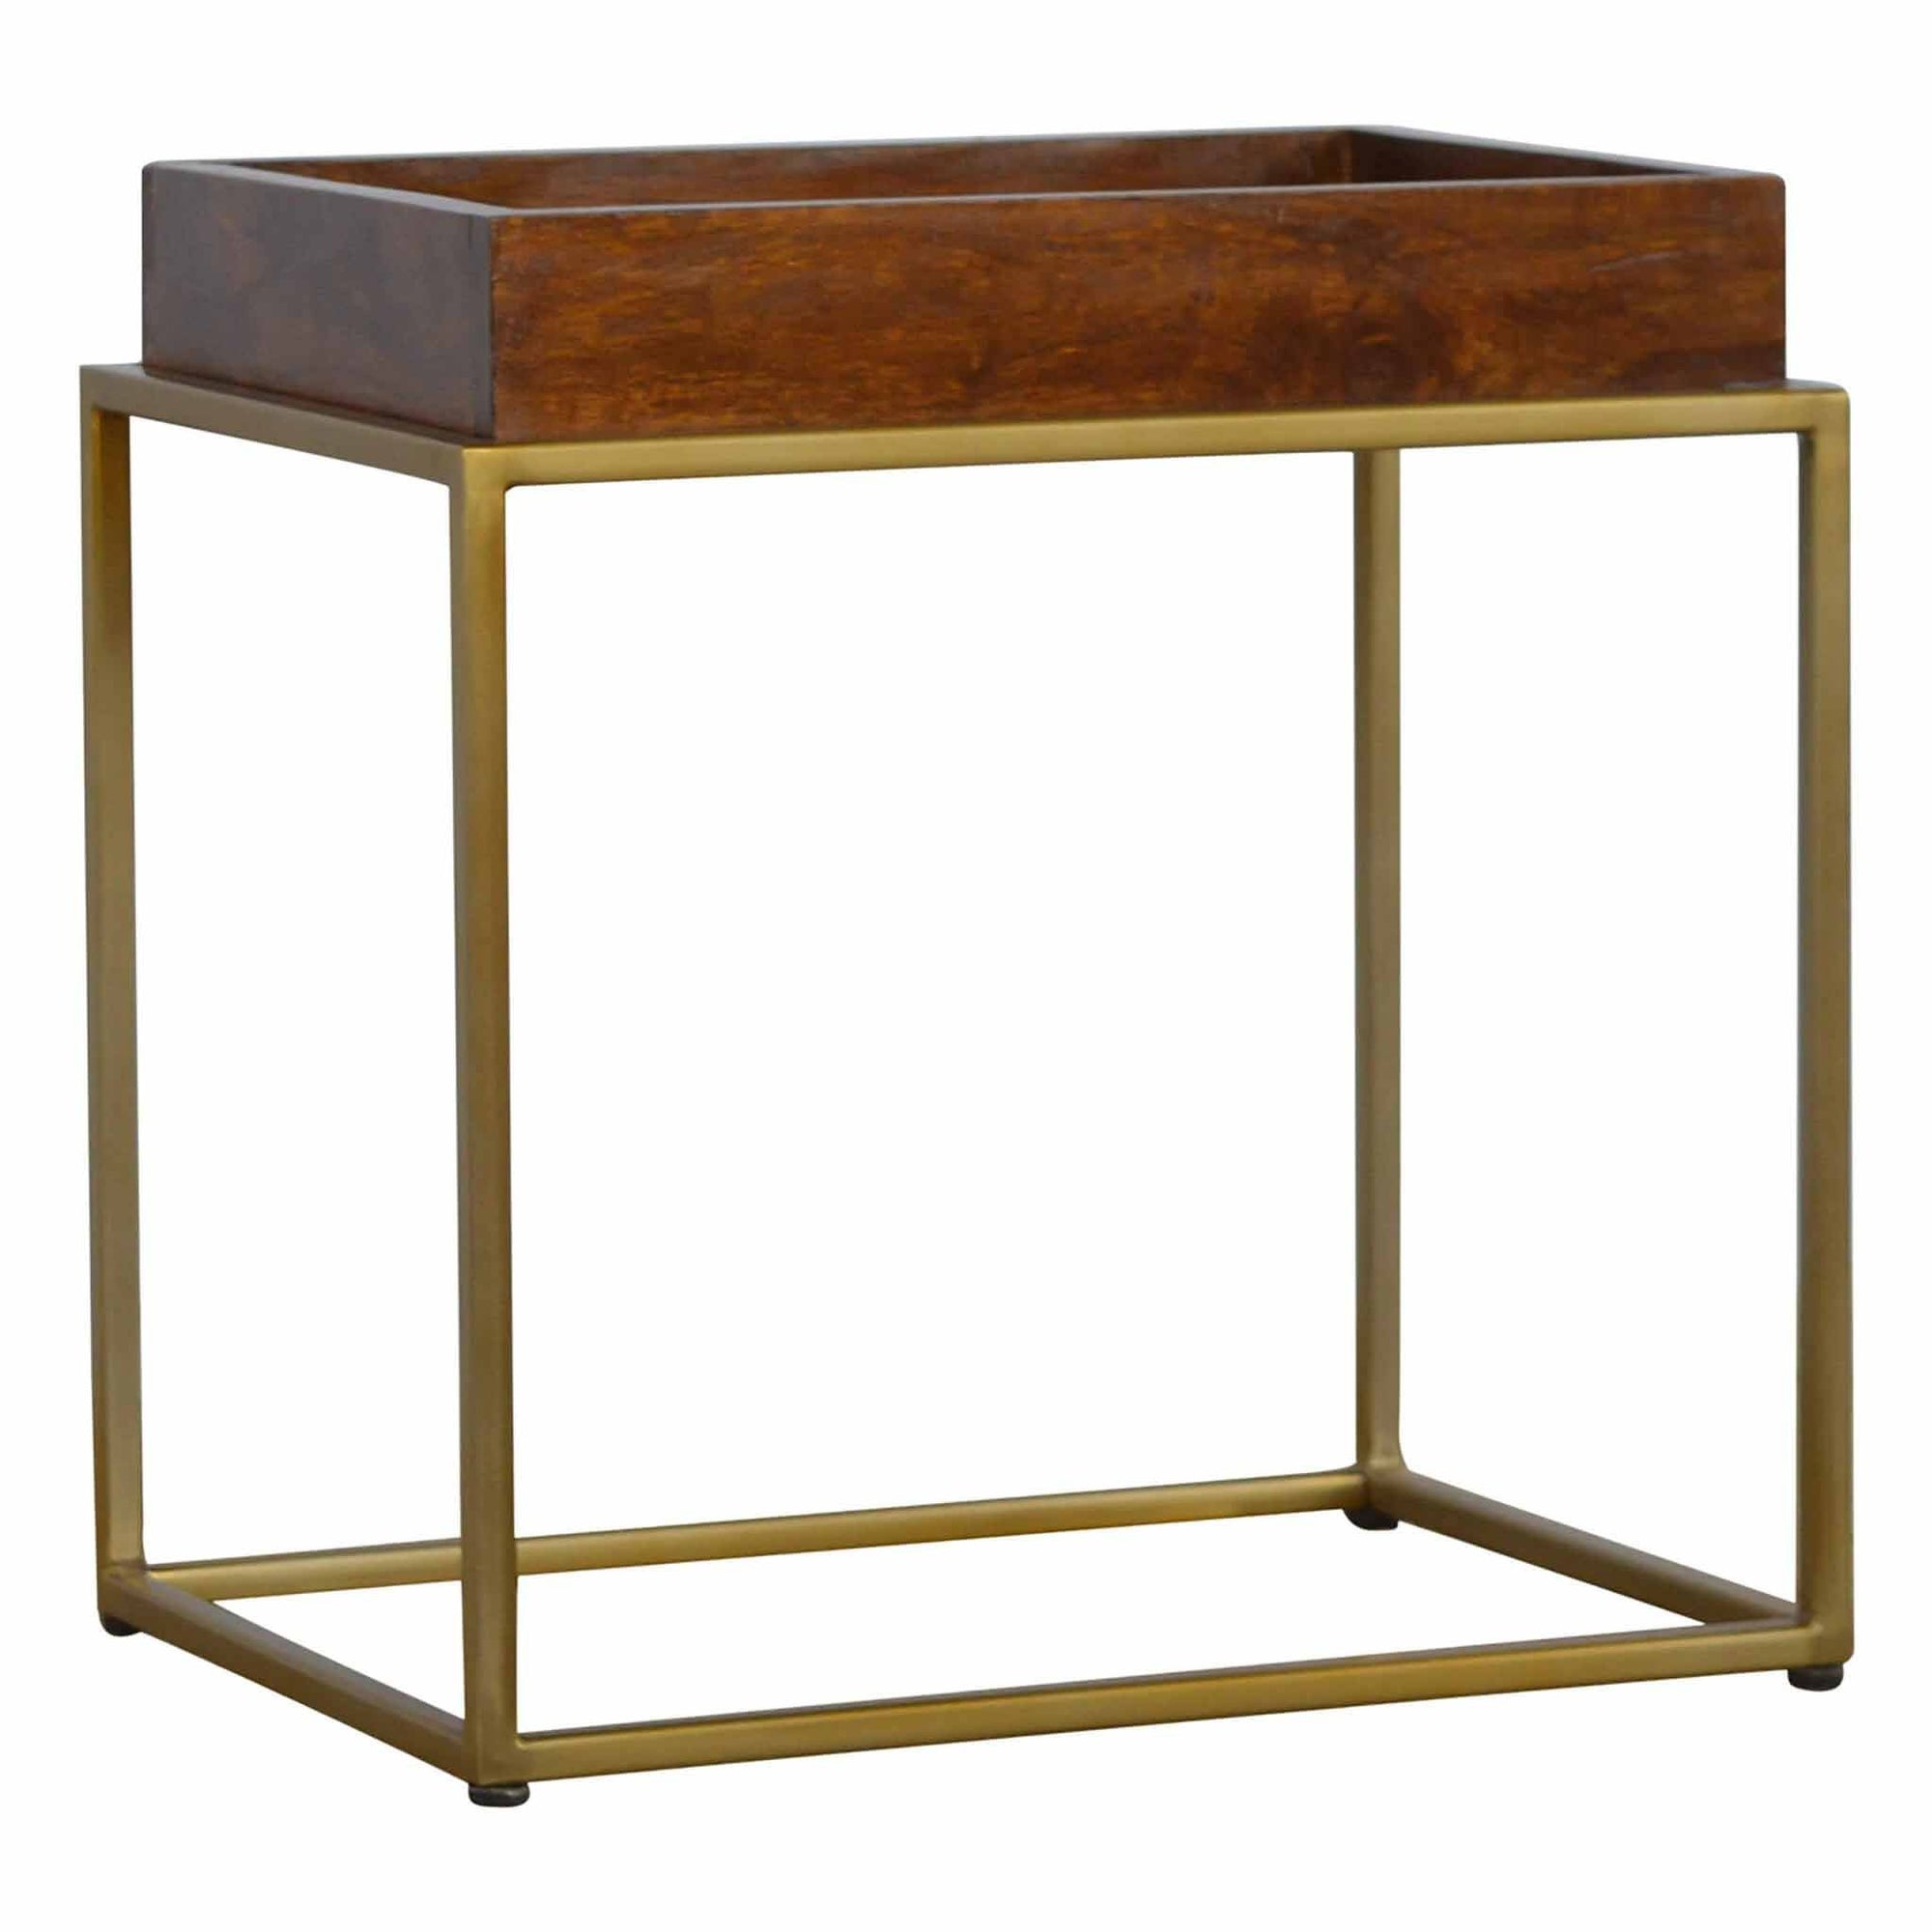 Artisan Chestnut Butler Tray Table with Gold Base by Roseland Furniture